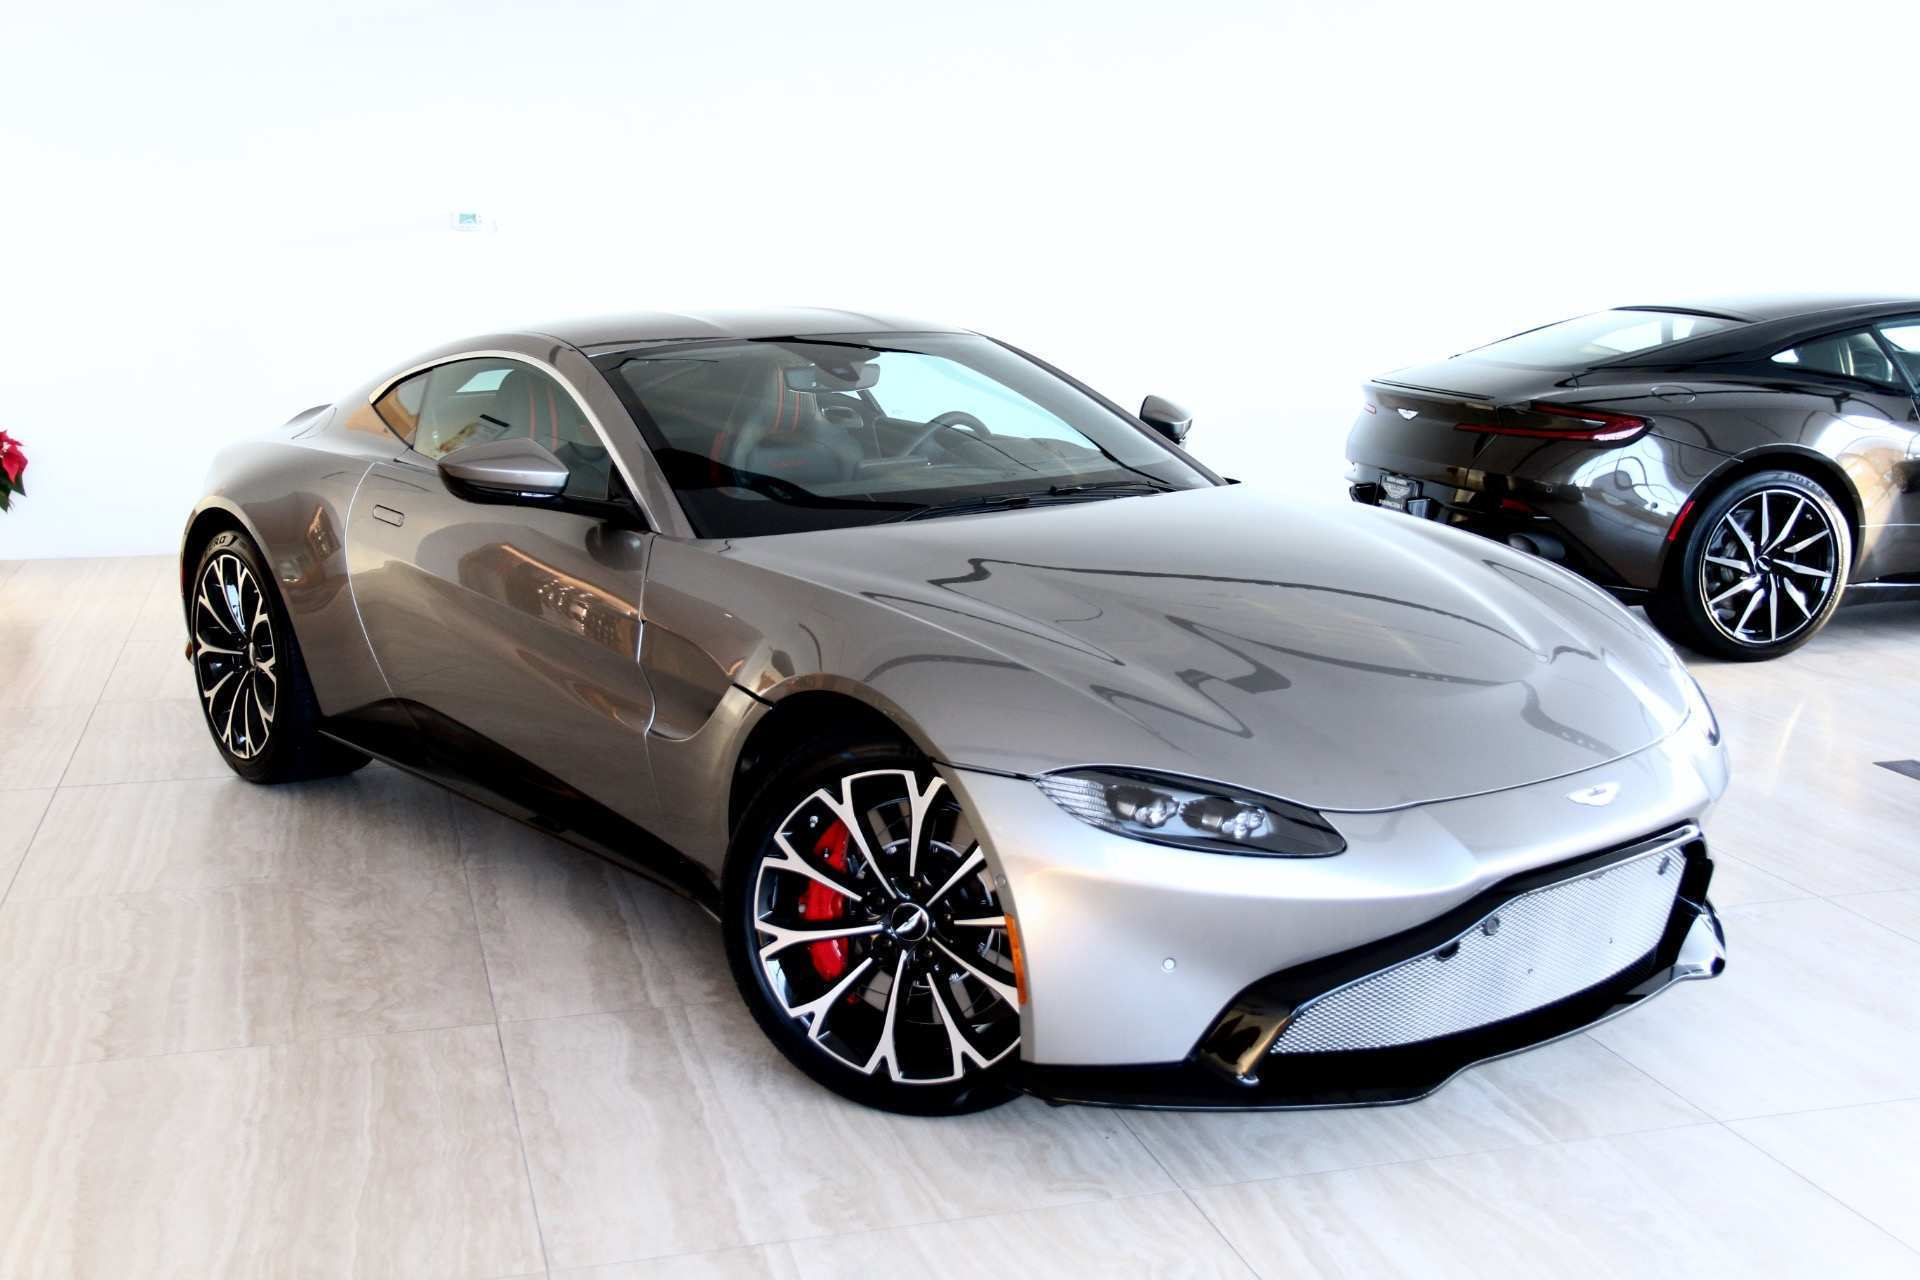 33 New 2019 Aston Martin Vantage For Sale Specs by 2019 Aston Martin Vantage For Sale